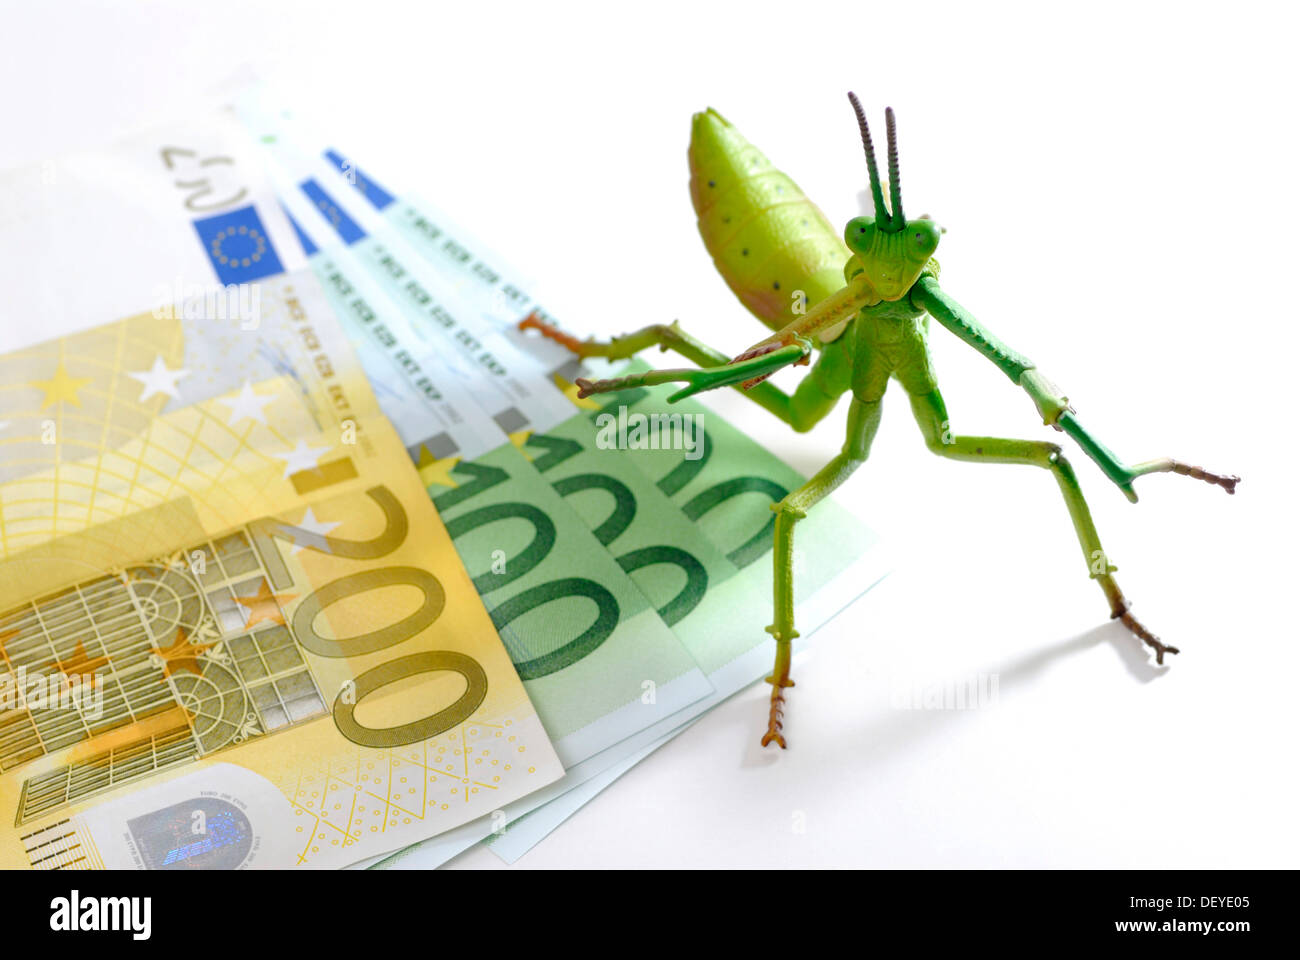 Locust on bank note, symbolic image for hedge funds - Stock Image